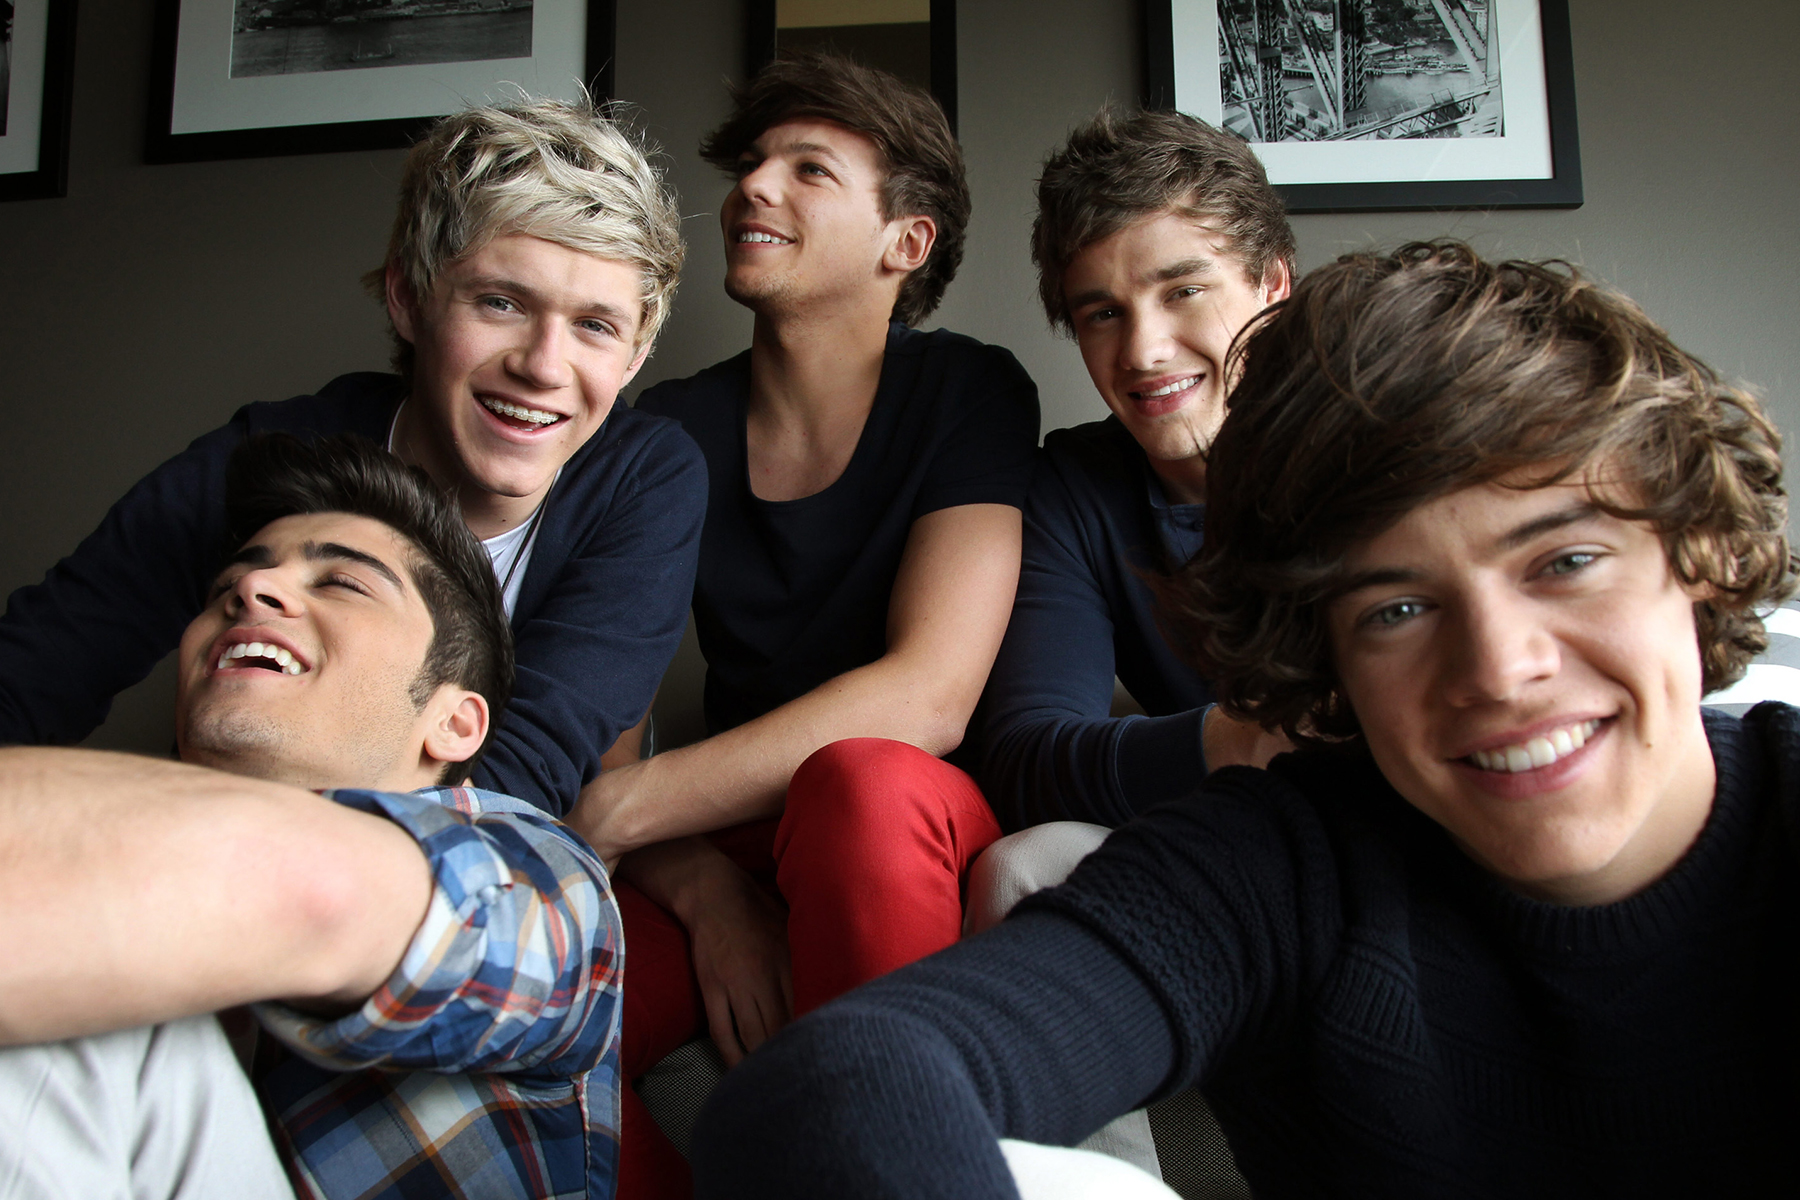 SYDNEY, AUSTRALIA - APRIL 11: (EUROPE AND AUSTRALASIA OUT) (Back L-R) Niall Horan, Louis Tomlinson, Liam Payne and (Front L-R) Zayn Malik and Harry Styles from British boy band 'One Direction' pose during a photo shoot at the Intercontinental Hotel on April 11, 2012 in Sydney, Australia. (Photo by Toby Zerna/Newspix/Getty Images)